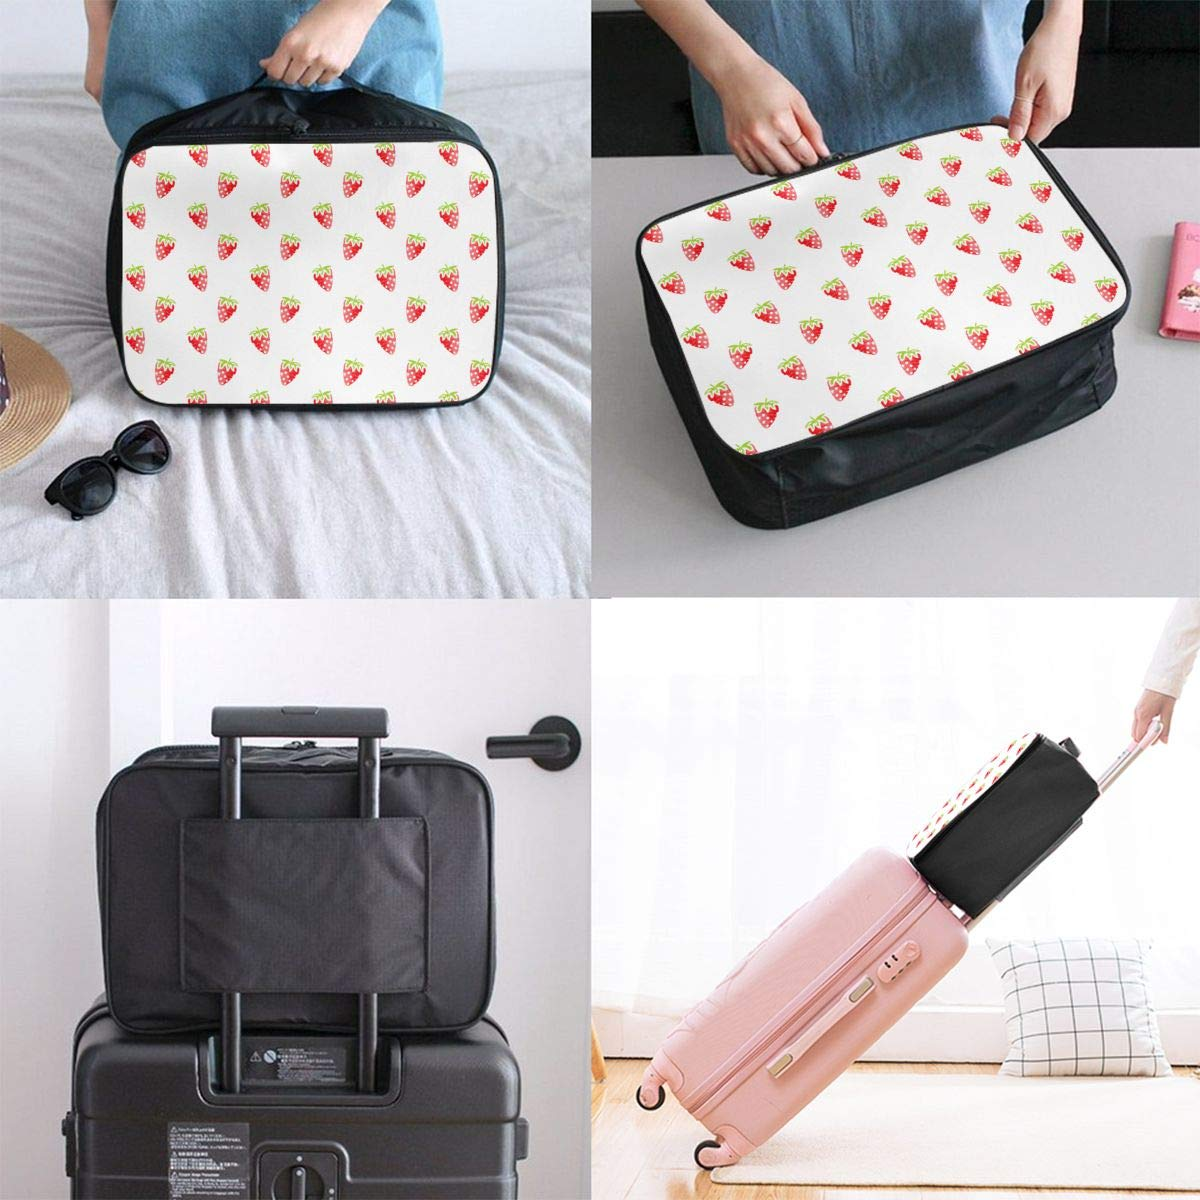 YueLJB Watercolor Strawberry Lightweight Large Capacity Portable Luggage Bag Travel Duffel Bag Storage Carry Luggage Duffle Tote Bag